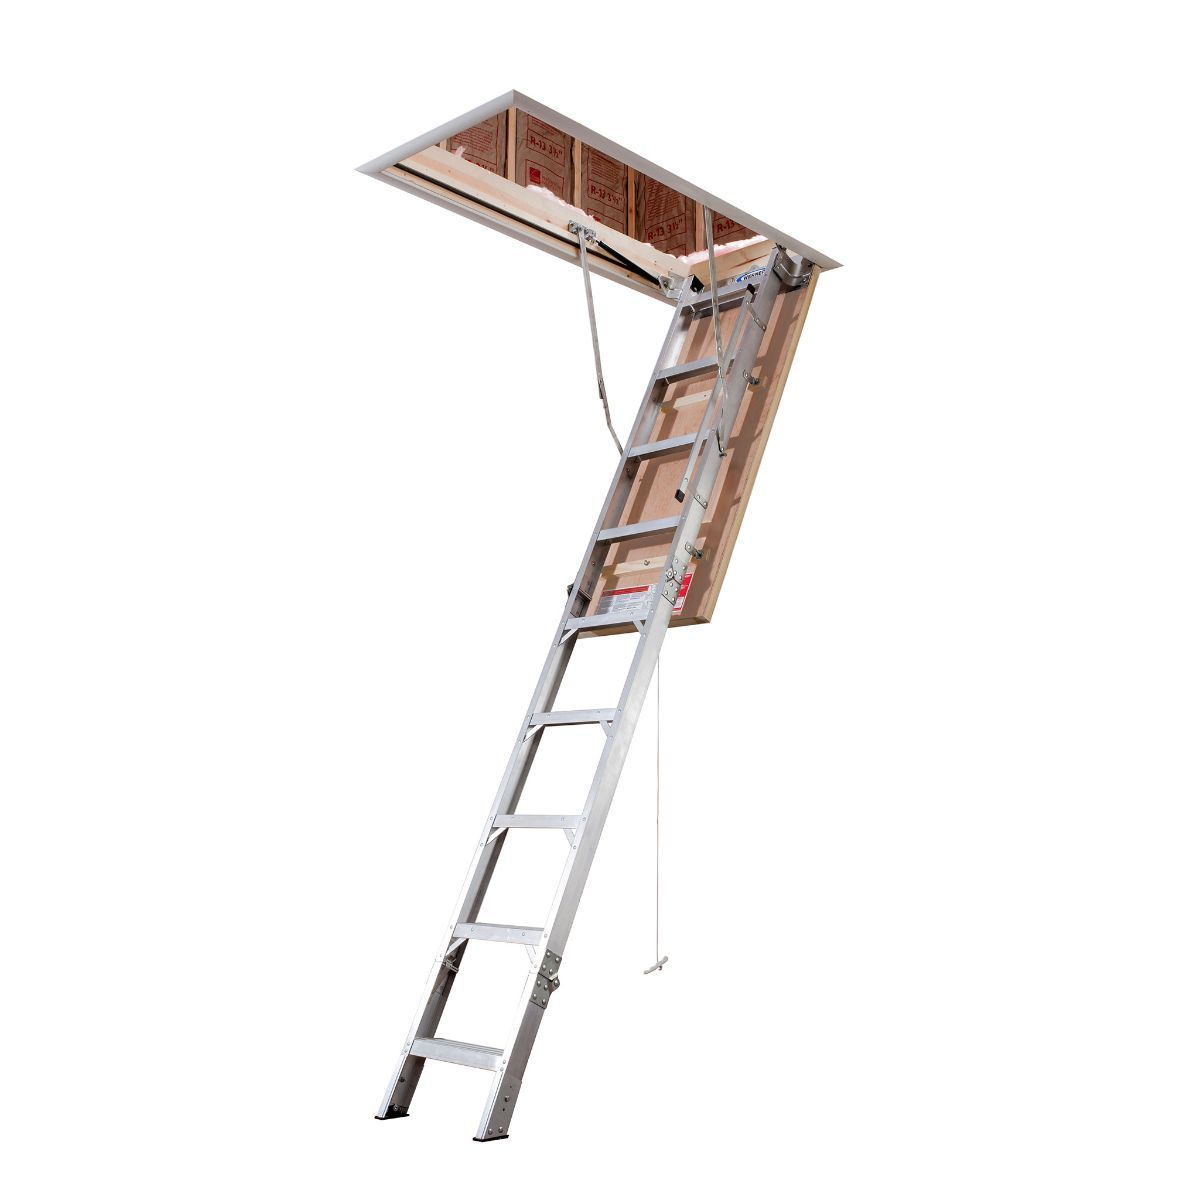 Product Image Attic Ladder Attic Renovation Attic Rooms